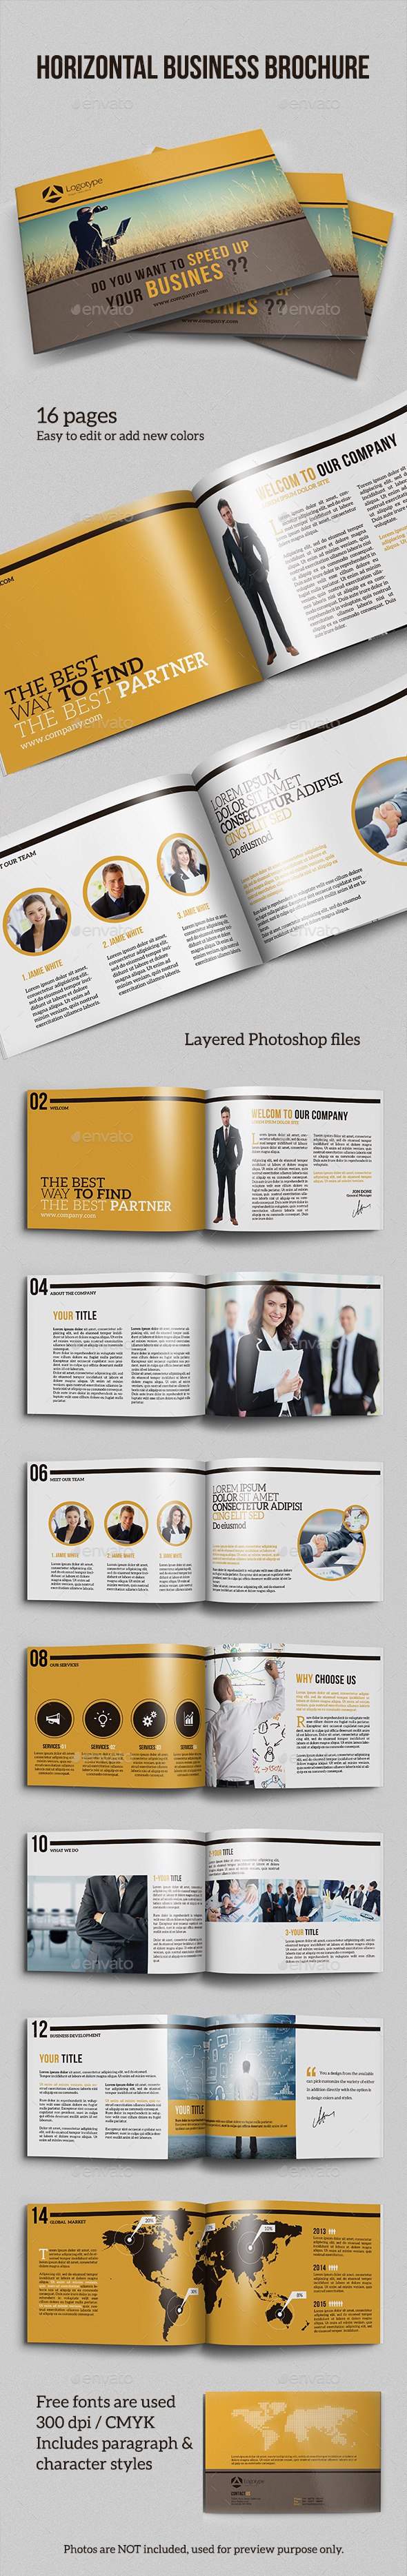 GraphicRiver Horizontal Business Brochure Template 11392705